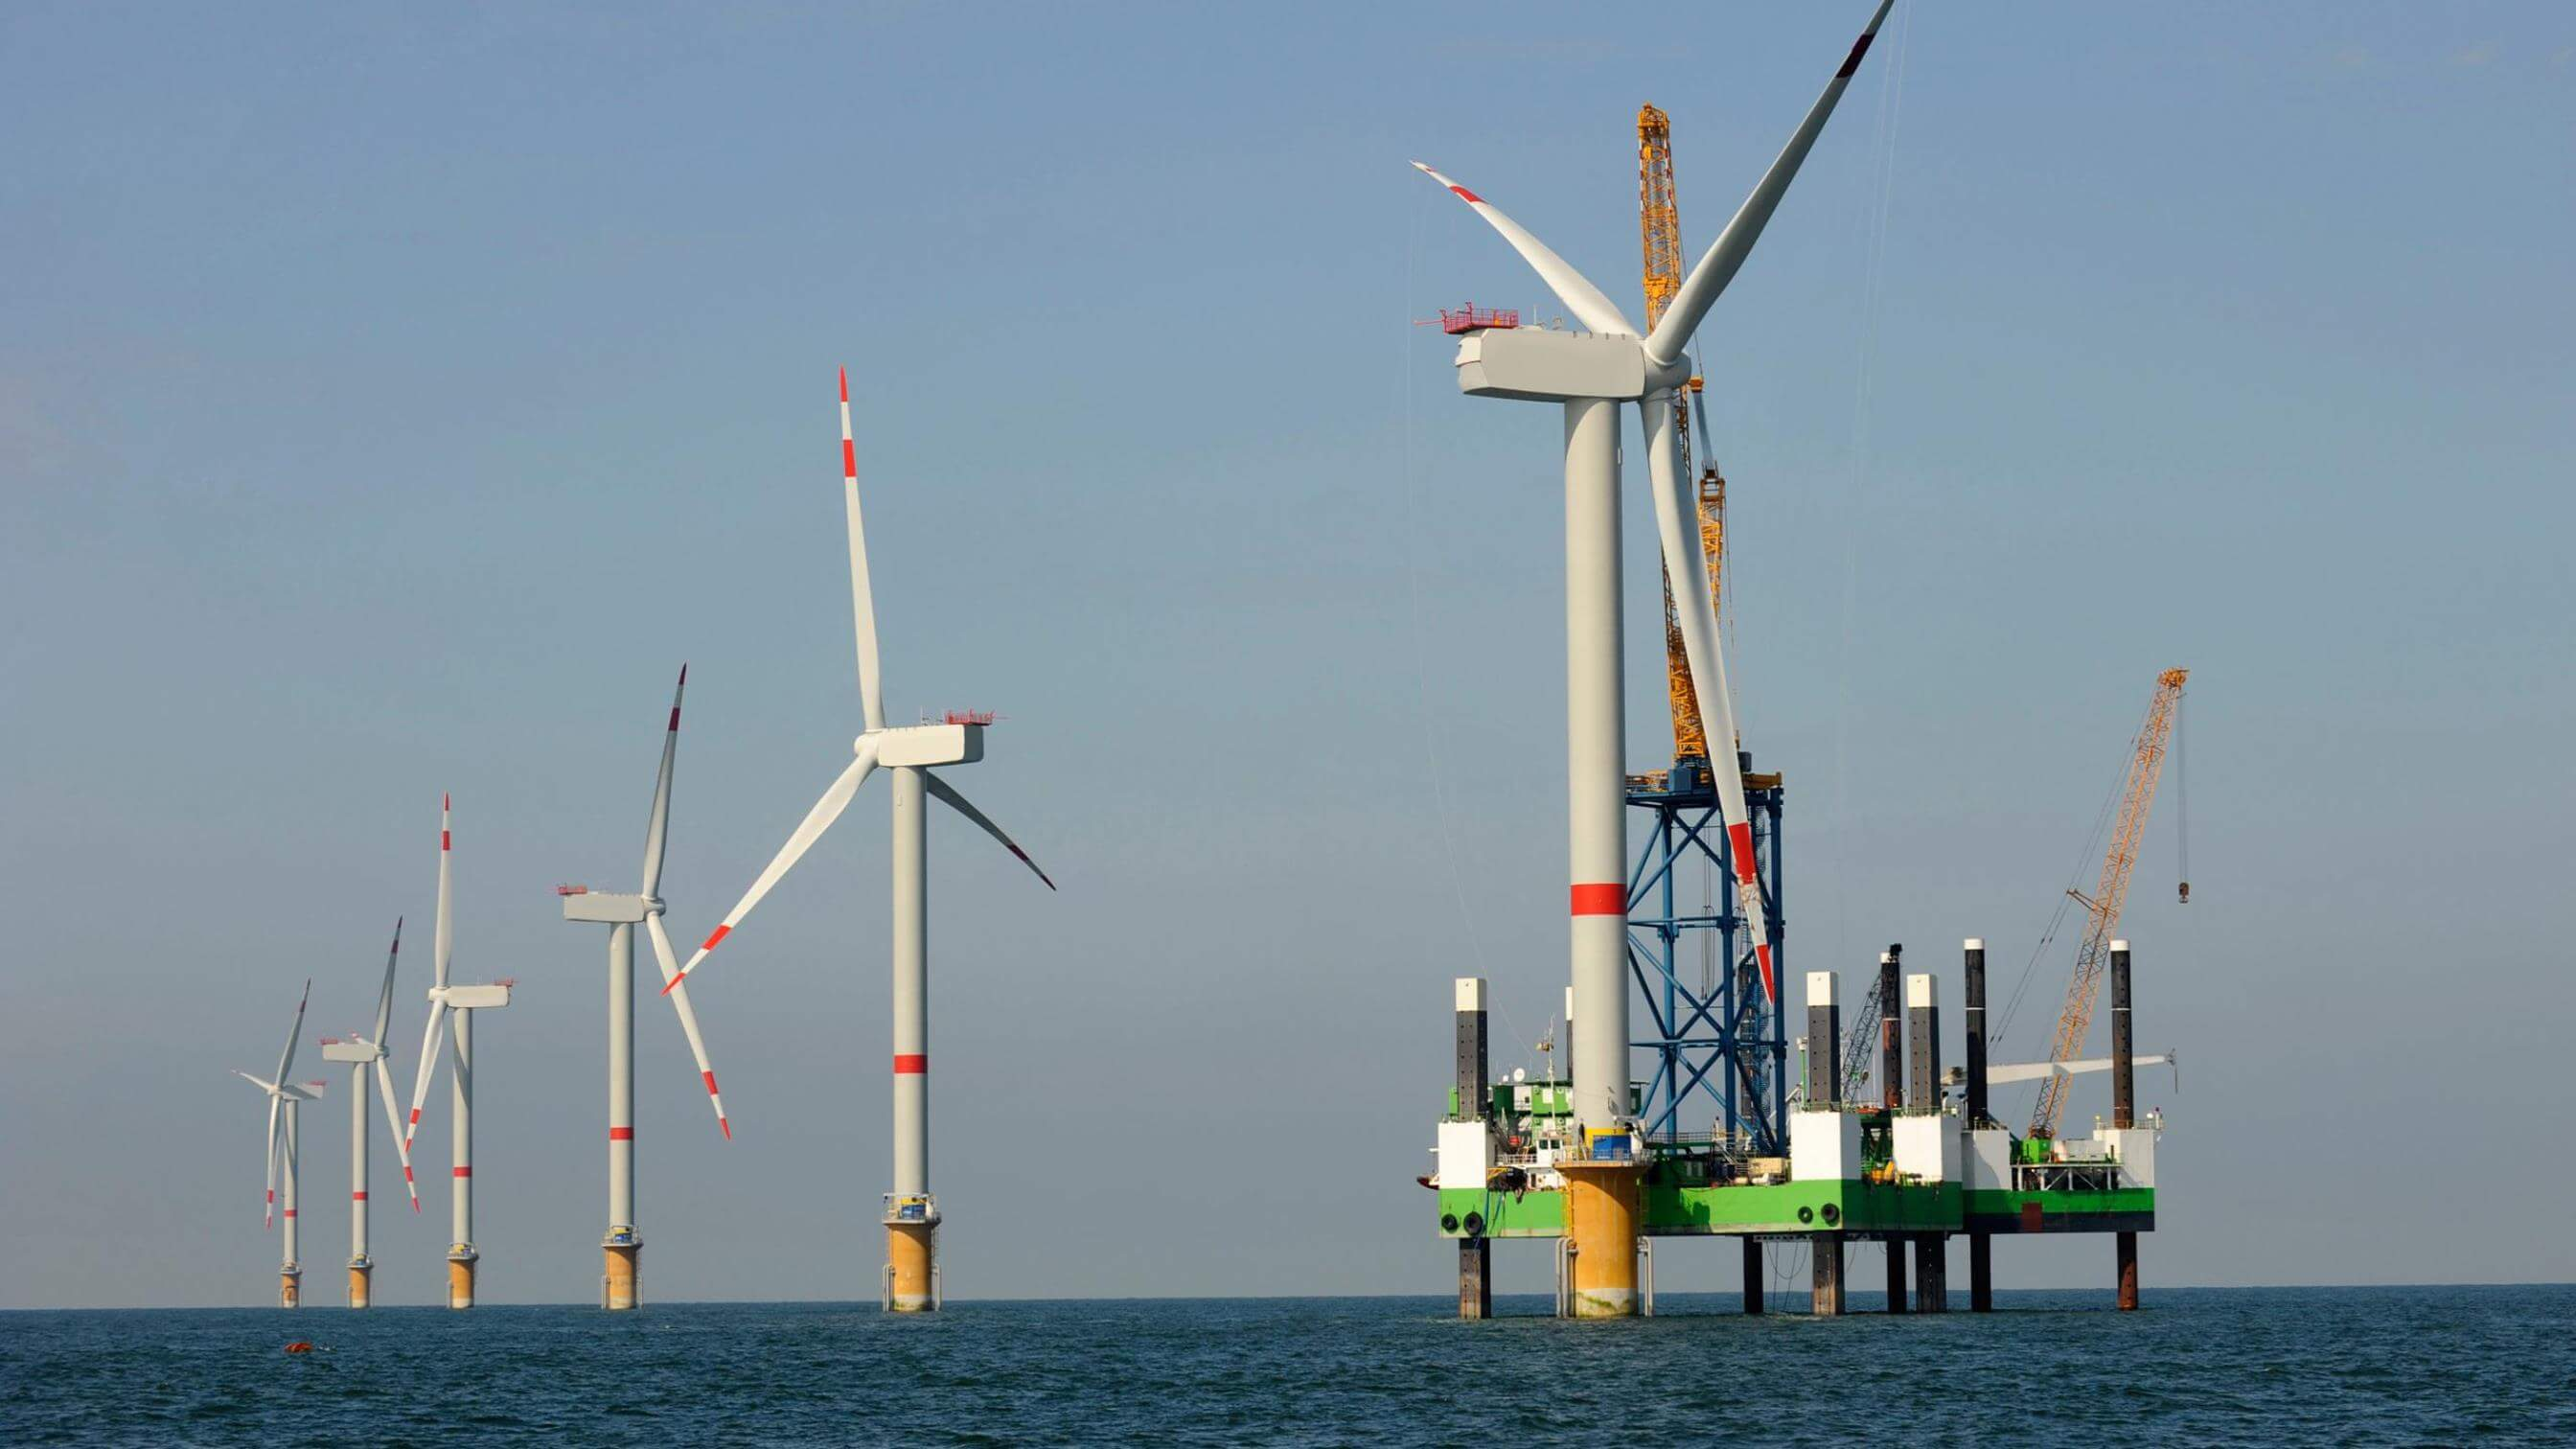 Support power for a wind farm